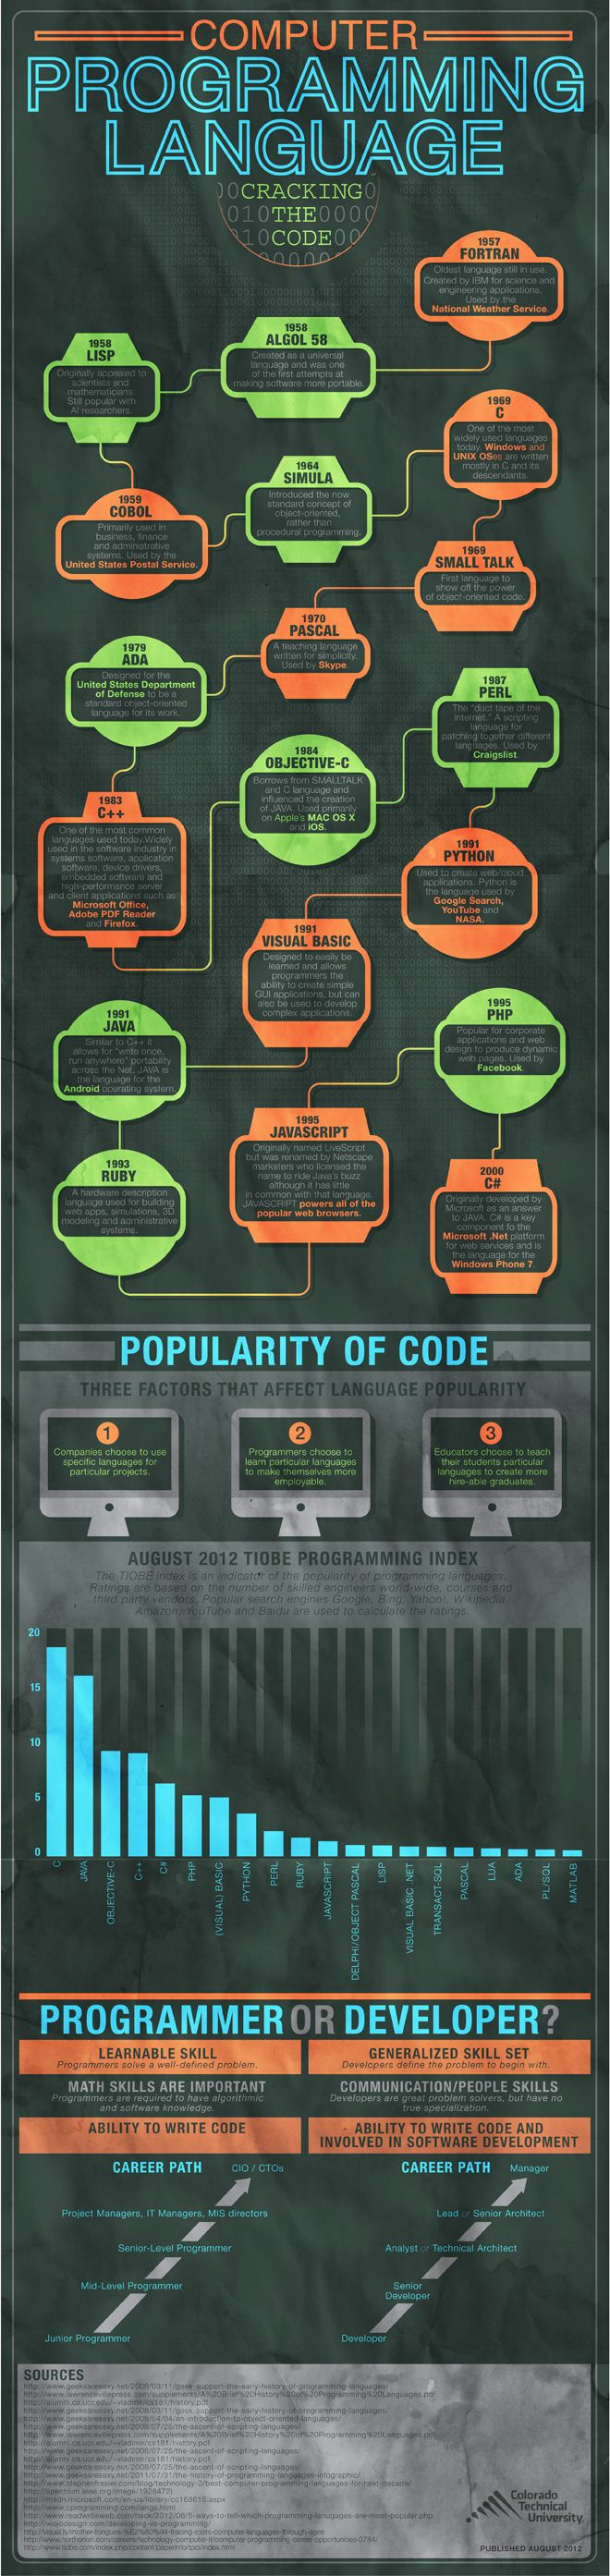 If you're interested in an IT degree and career, coding can be pretty intimidating. From understanding common programming languages to deciphering p